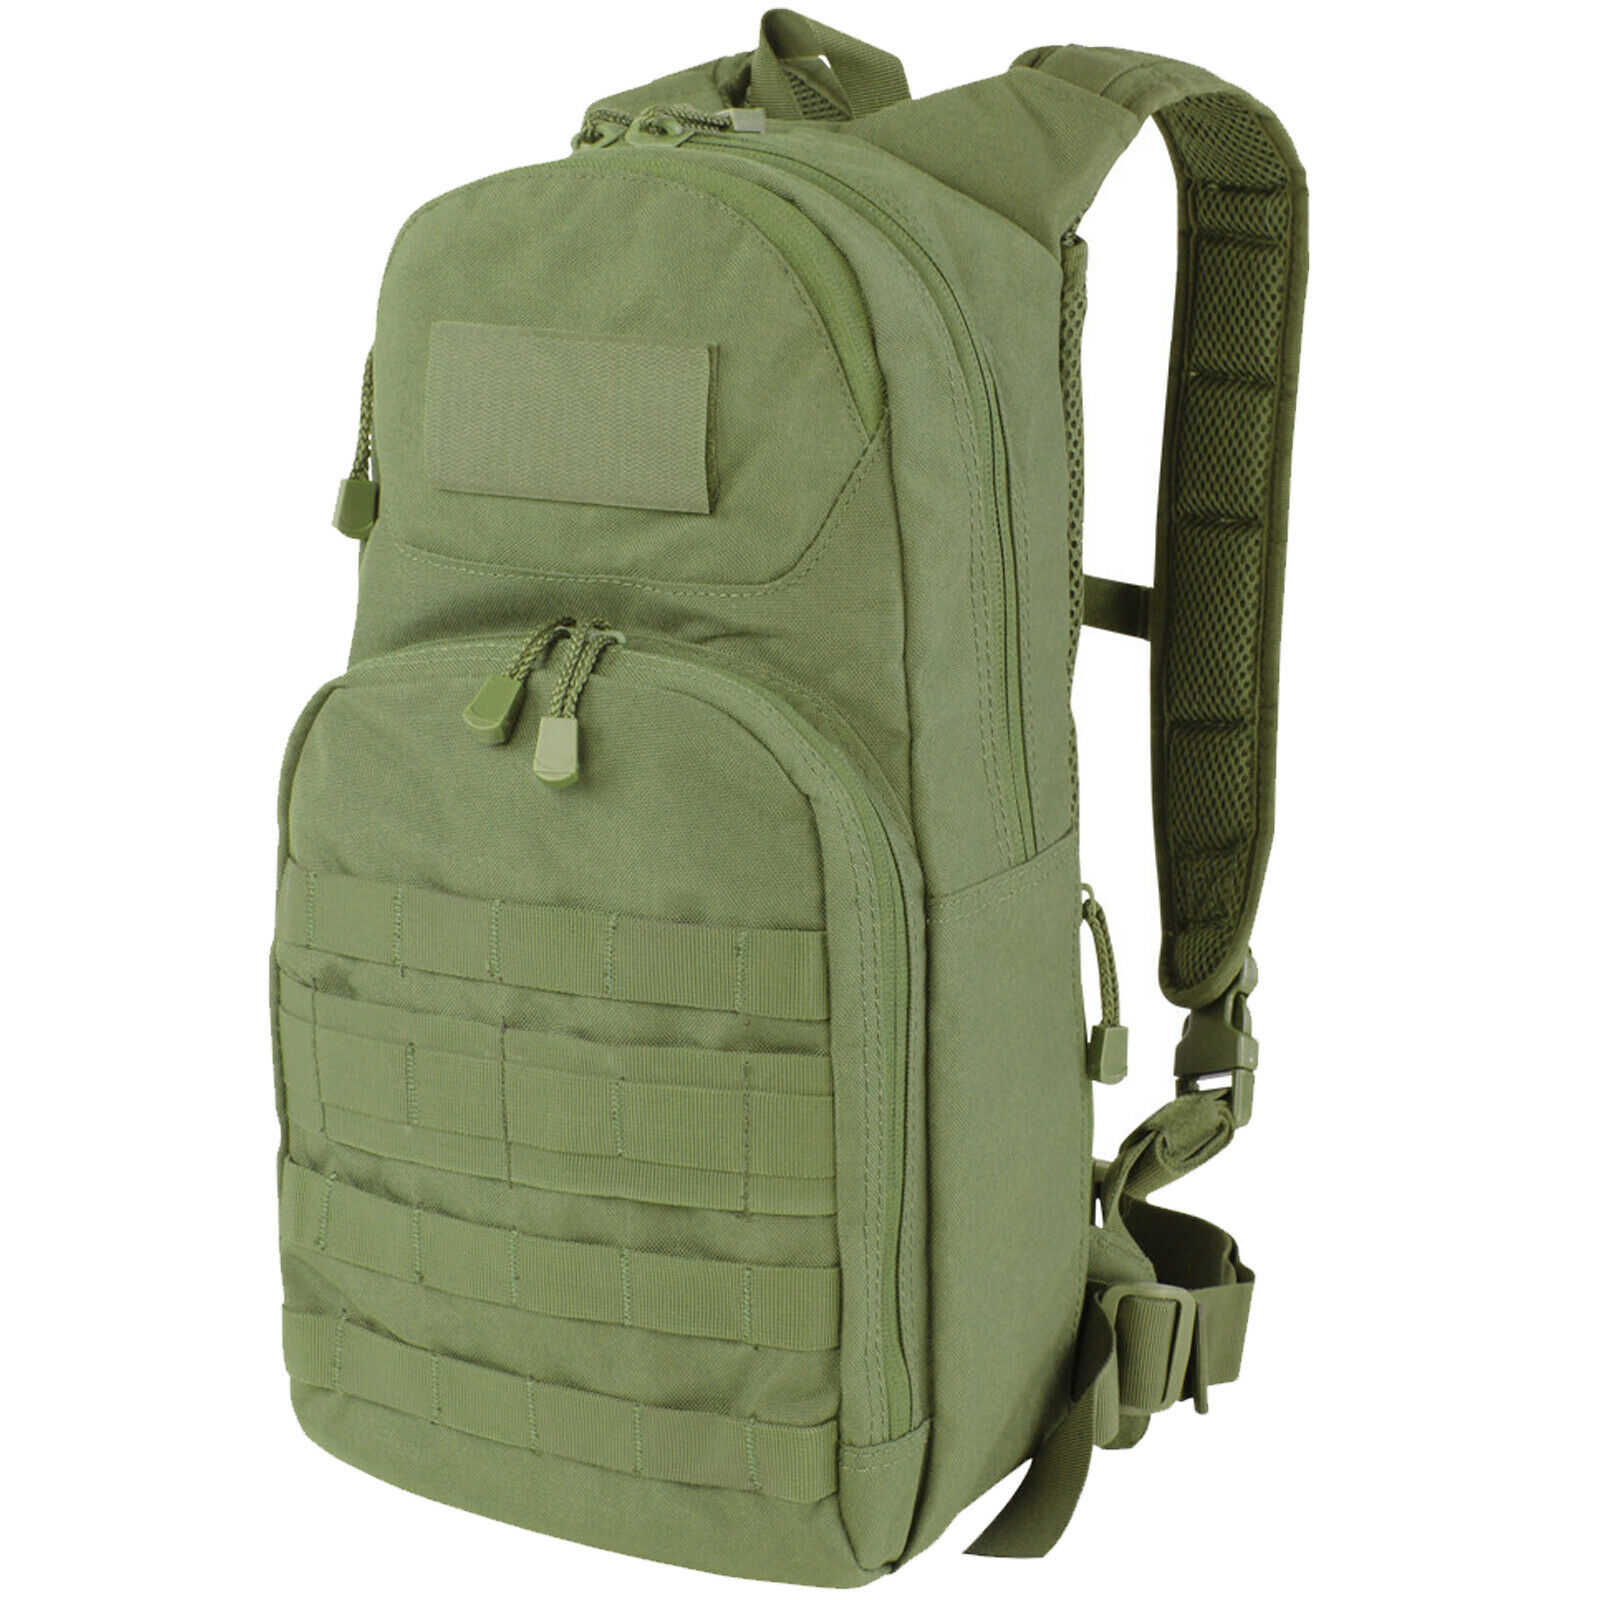 OD GREEN - Molle Fuel Hydration Pack Backpack Bag 2.5 Liter Water Bladder Carrier